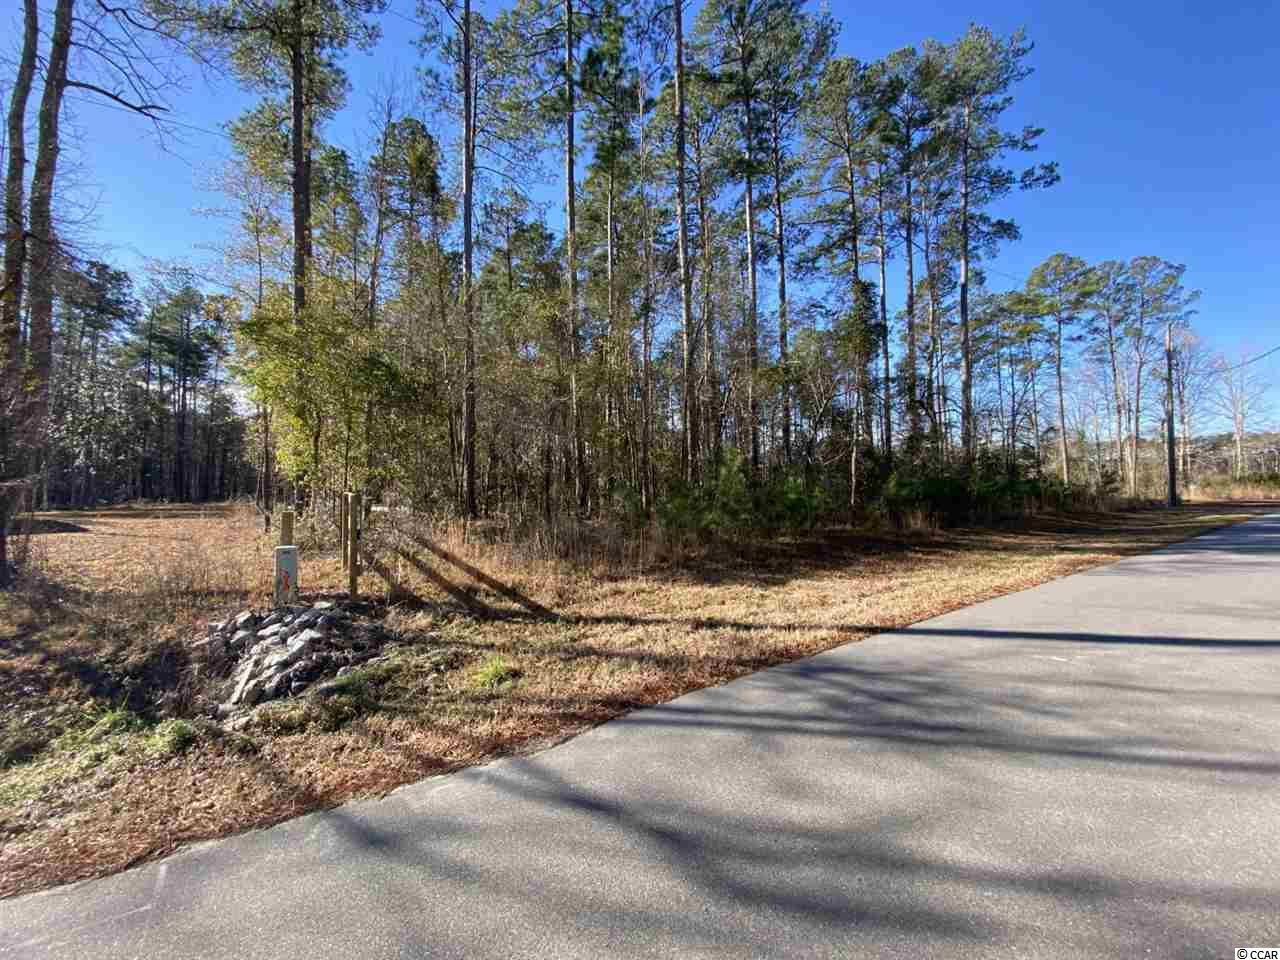 3 residential homesites zoned R1 in the city limits of Conway- public water and sewer available- Lot 1 is 0.36 acres- Lot 2 is 0.36 acres- Lot 4 is 0.73 acres